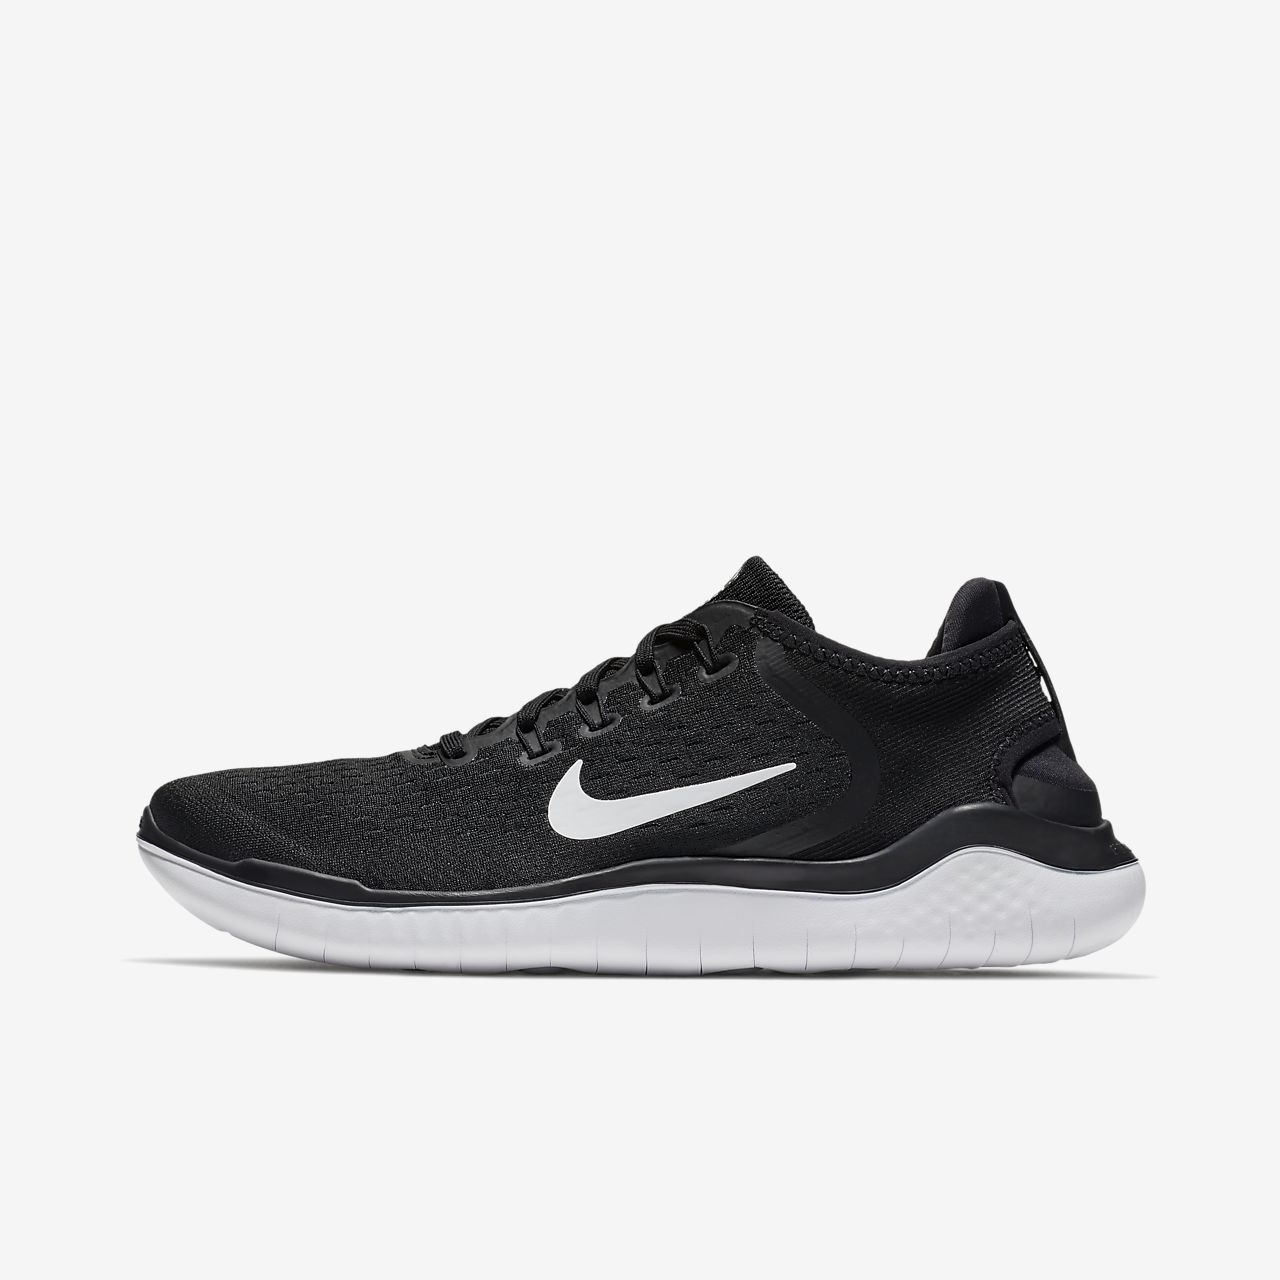 new style 22f92 7ad5b ... Nike Free RN 2018 Mens Running Shoe